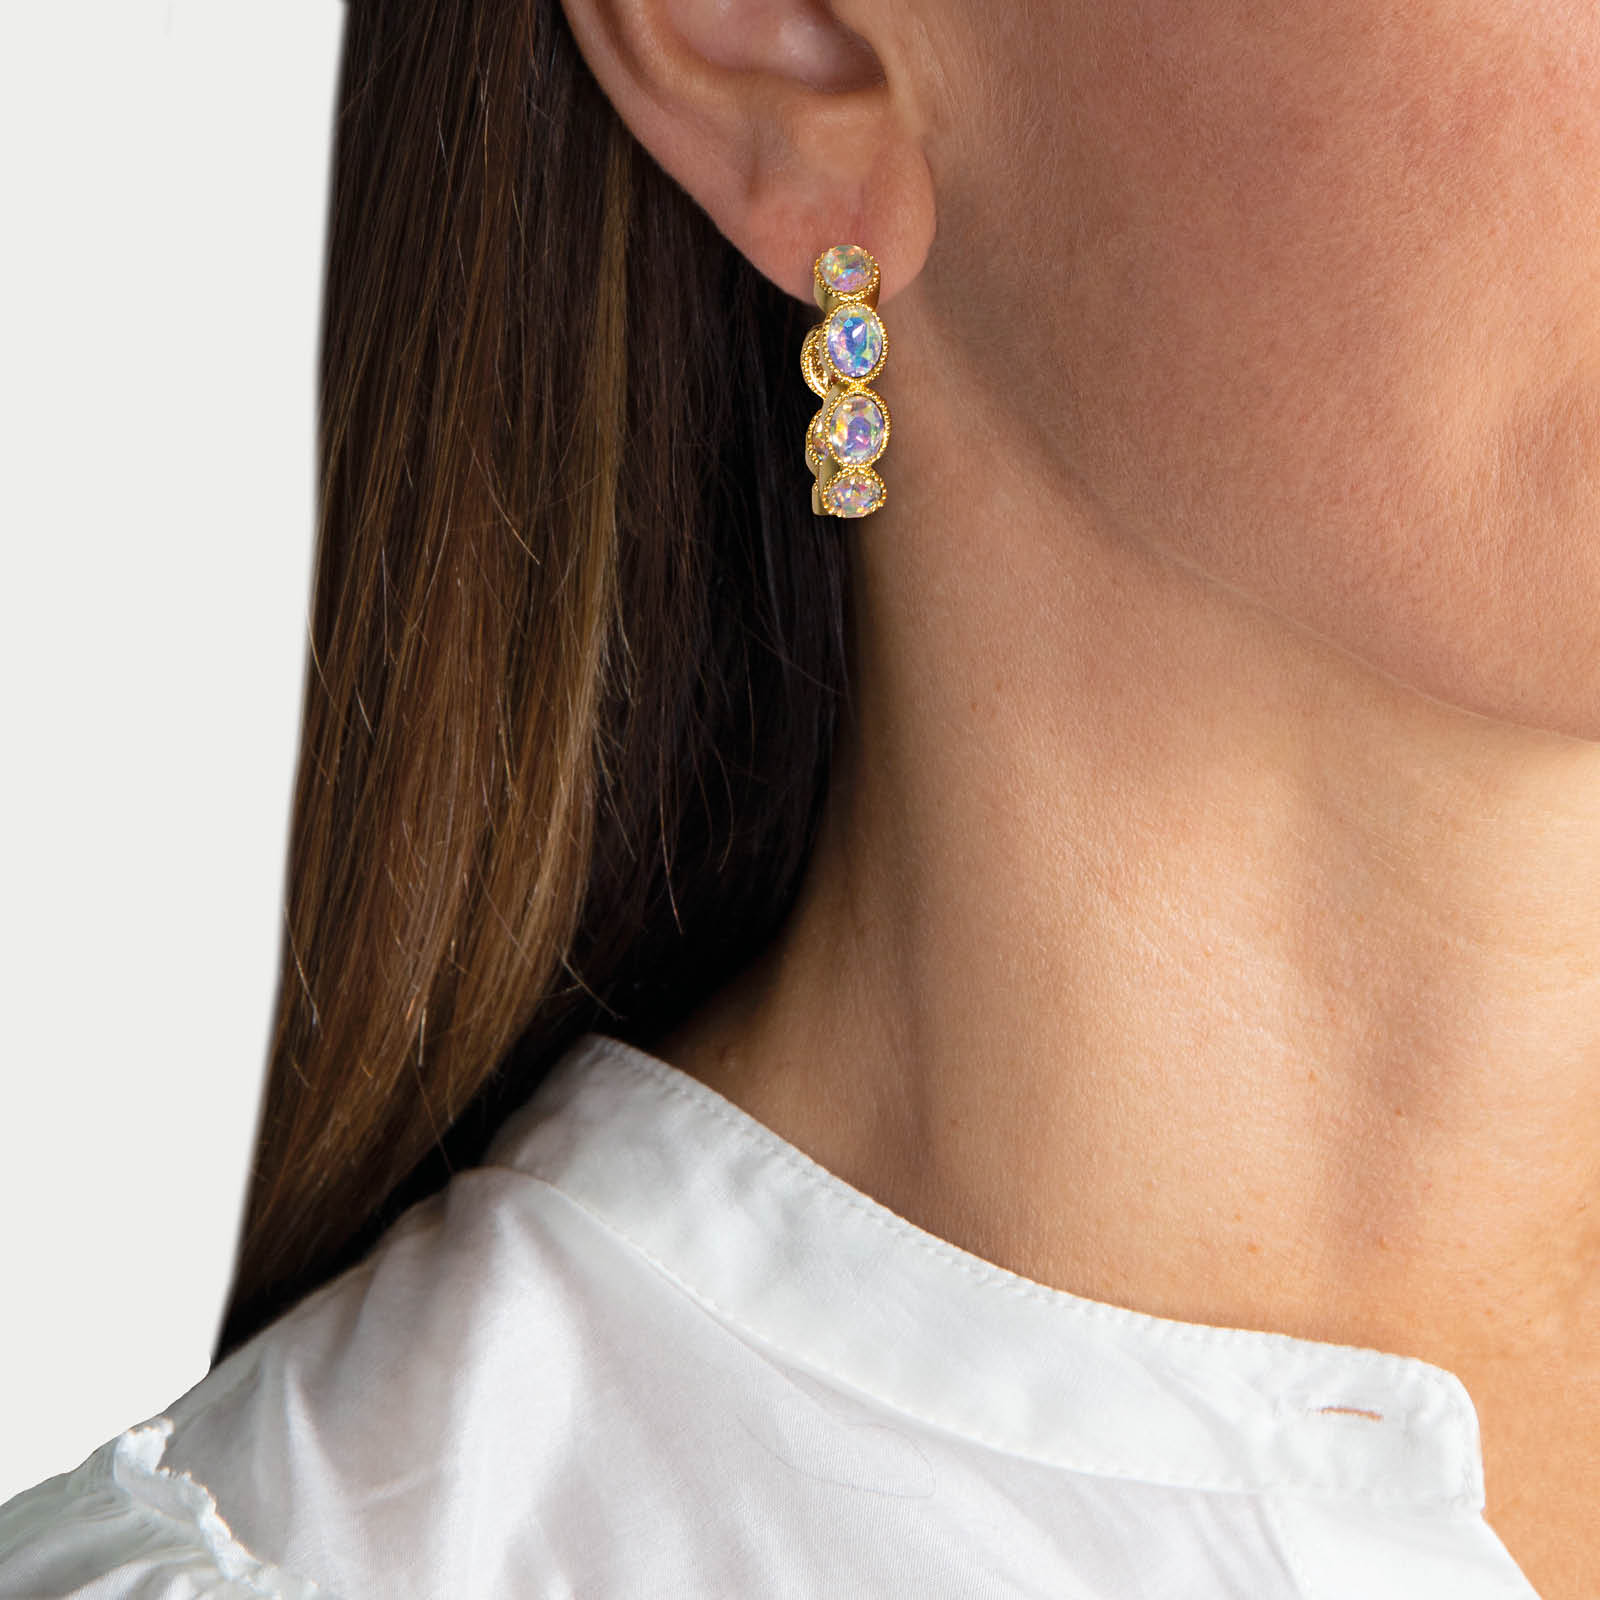 ABY Small Hoop Earrings